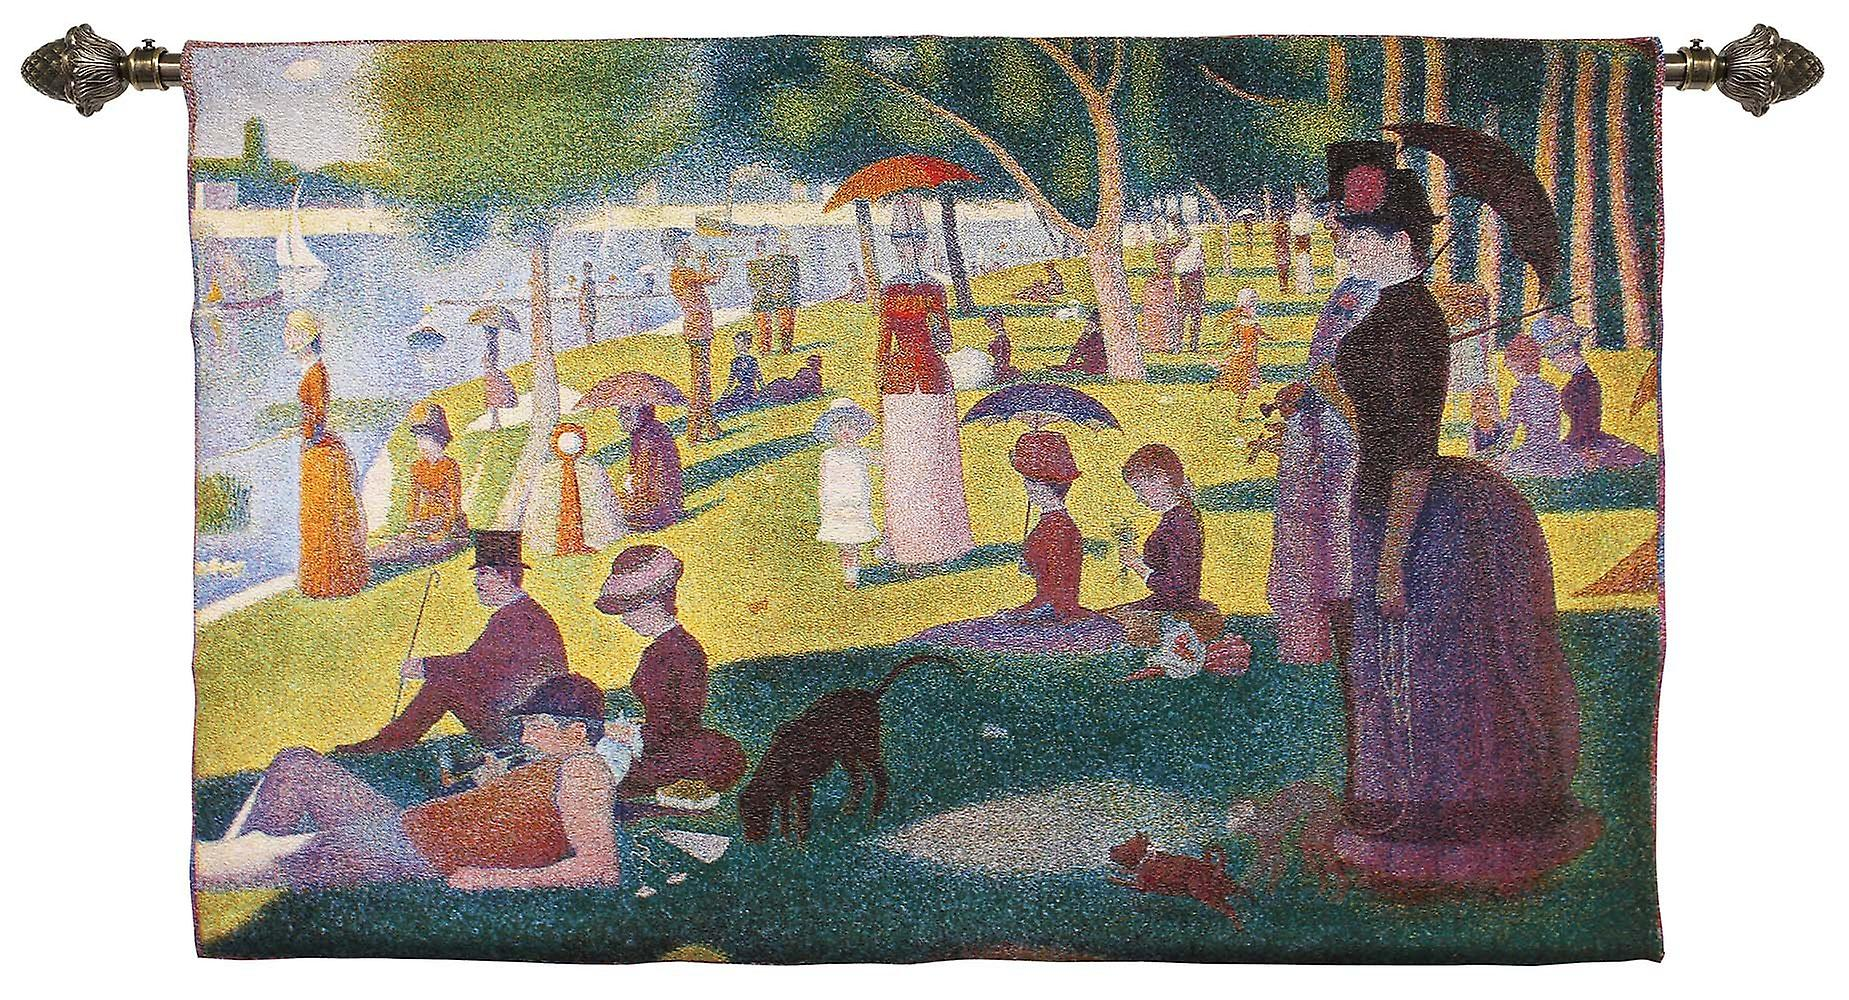 Georges seurat - la grande jatte wall hanging by signare tapestry / 173cm x 68cm / wh-gs-lgj